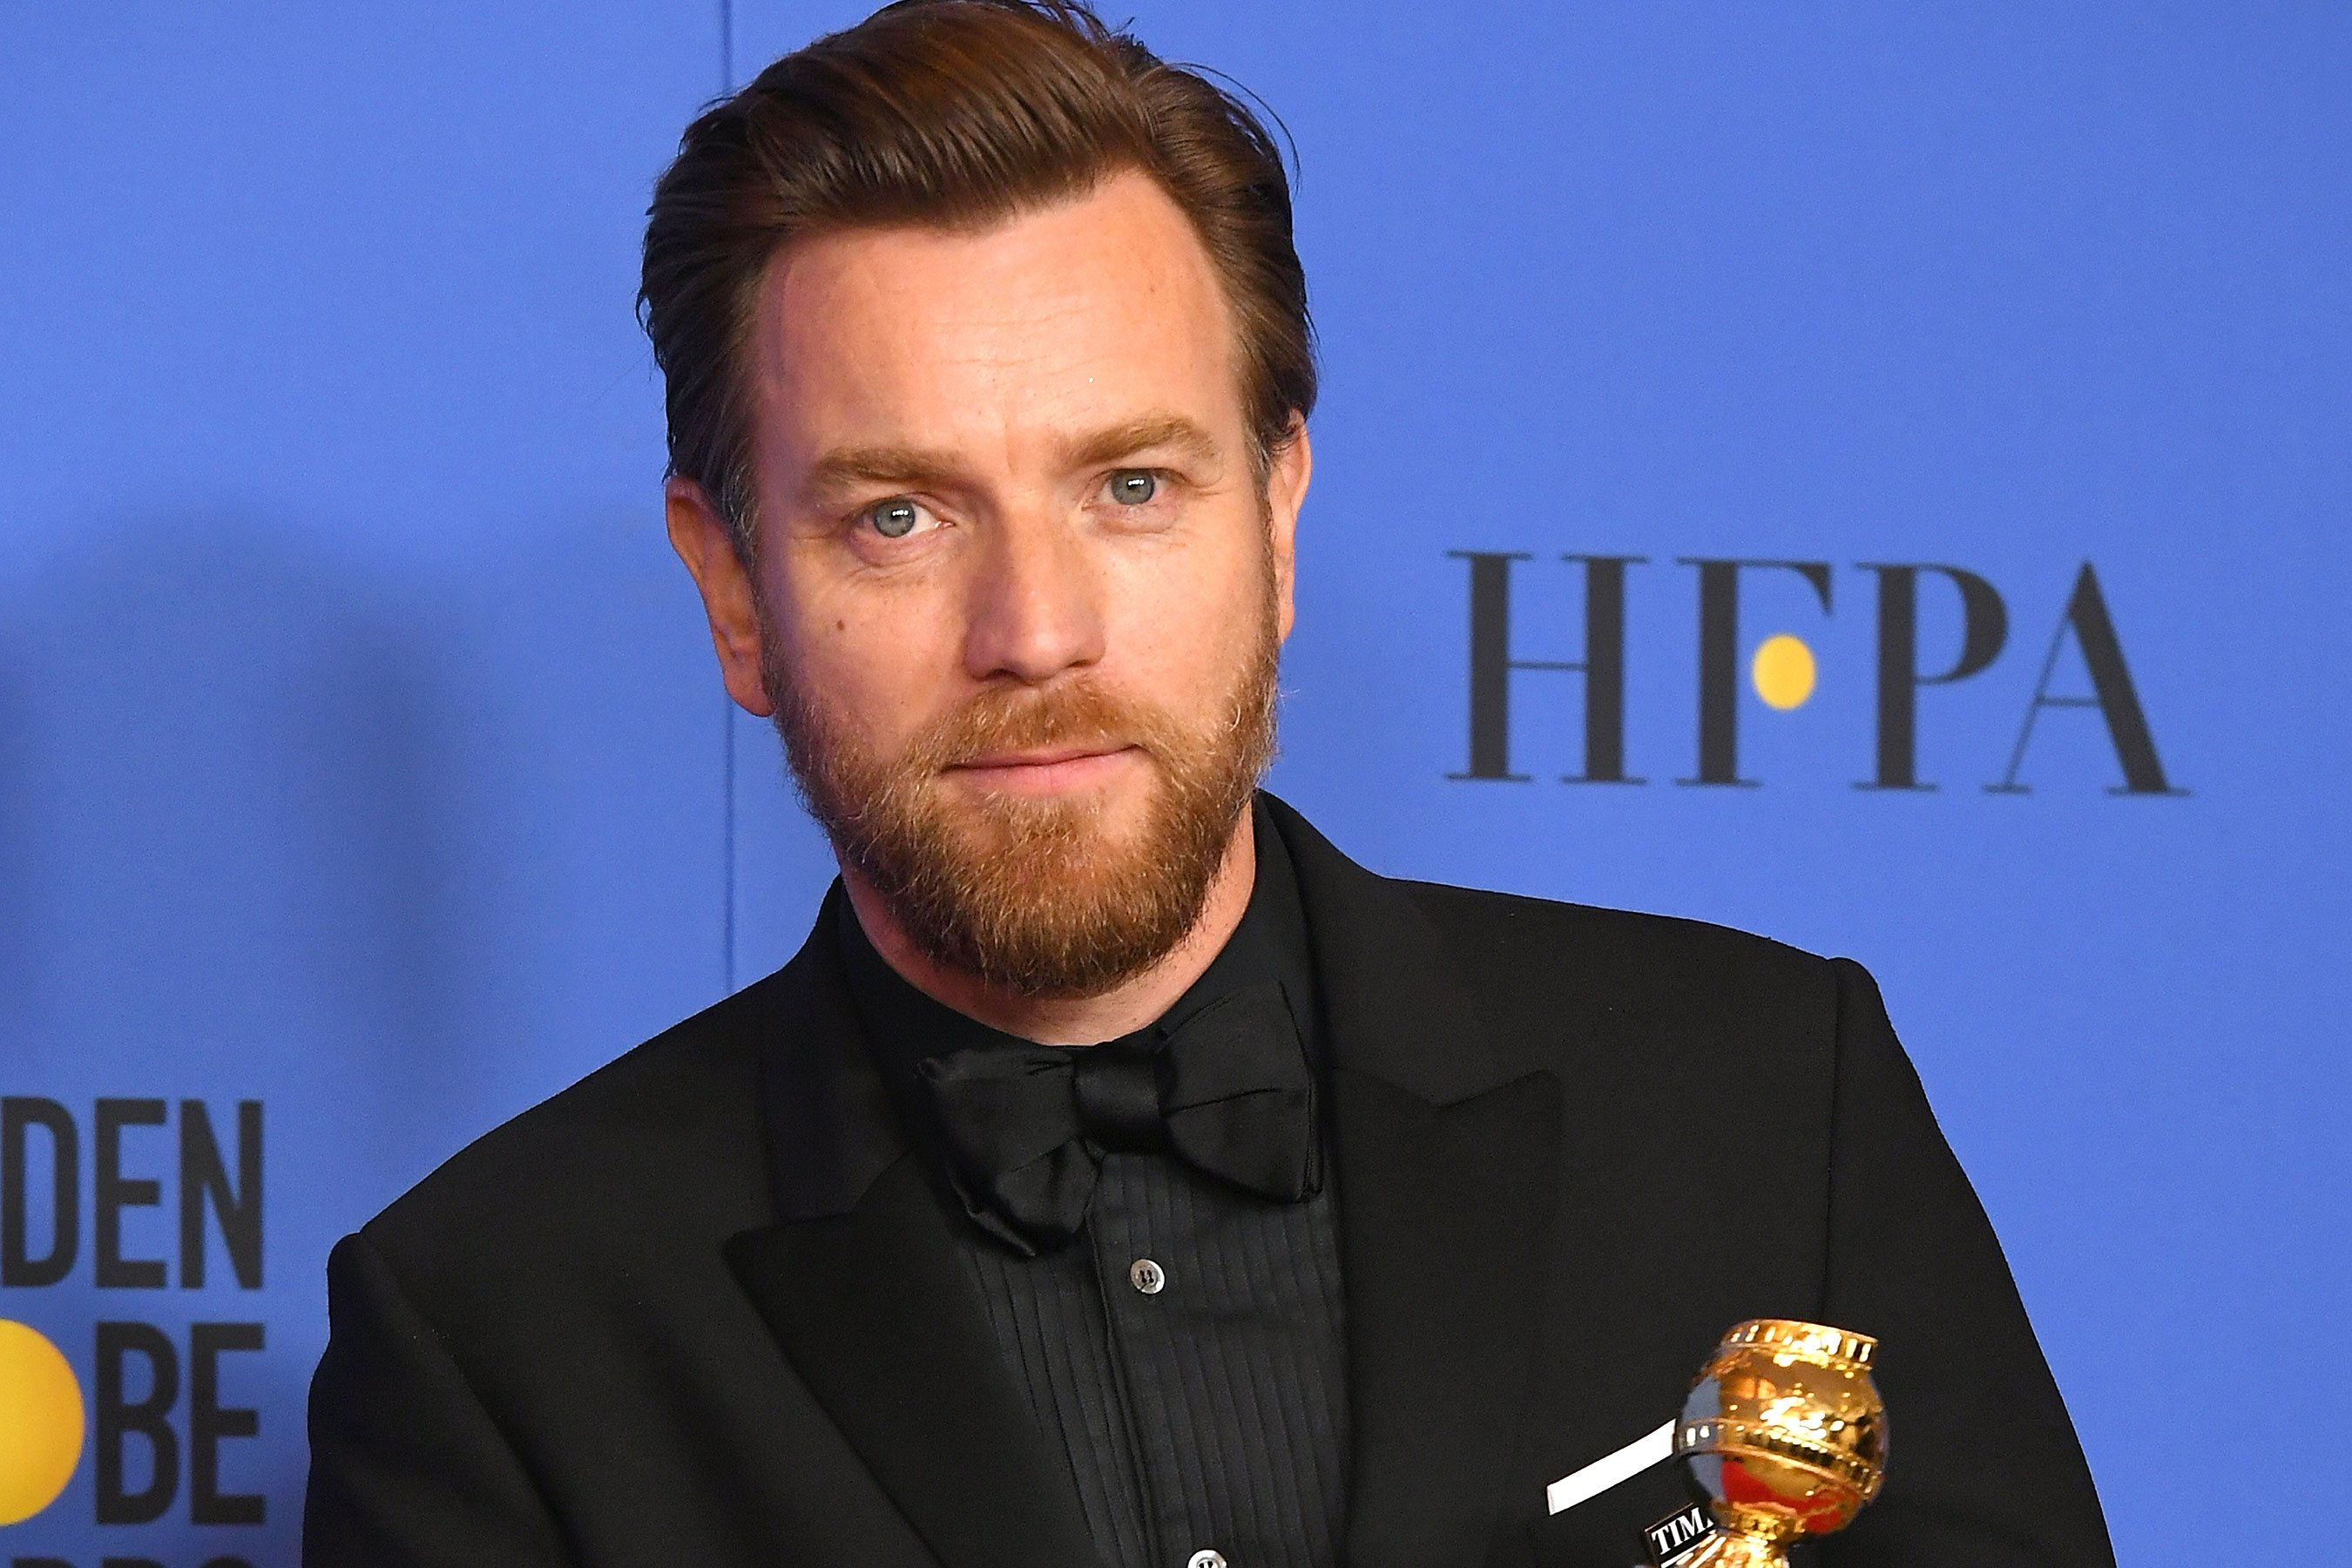 Star Wars: Ewan McGregor 'happy' to play Obi-Wan again